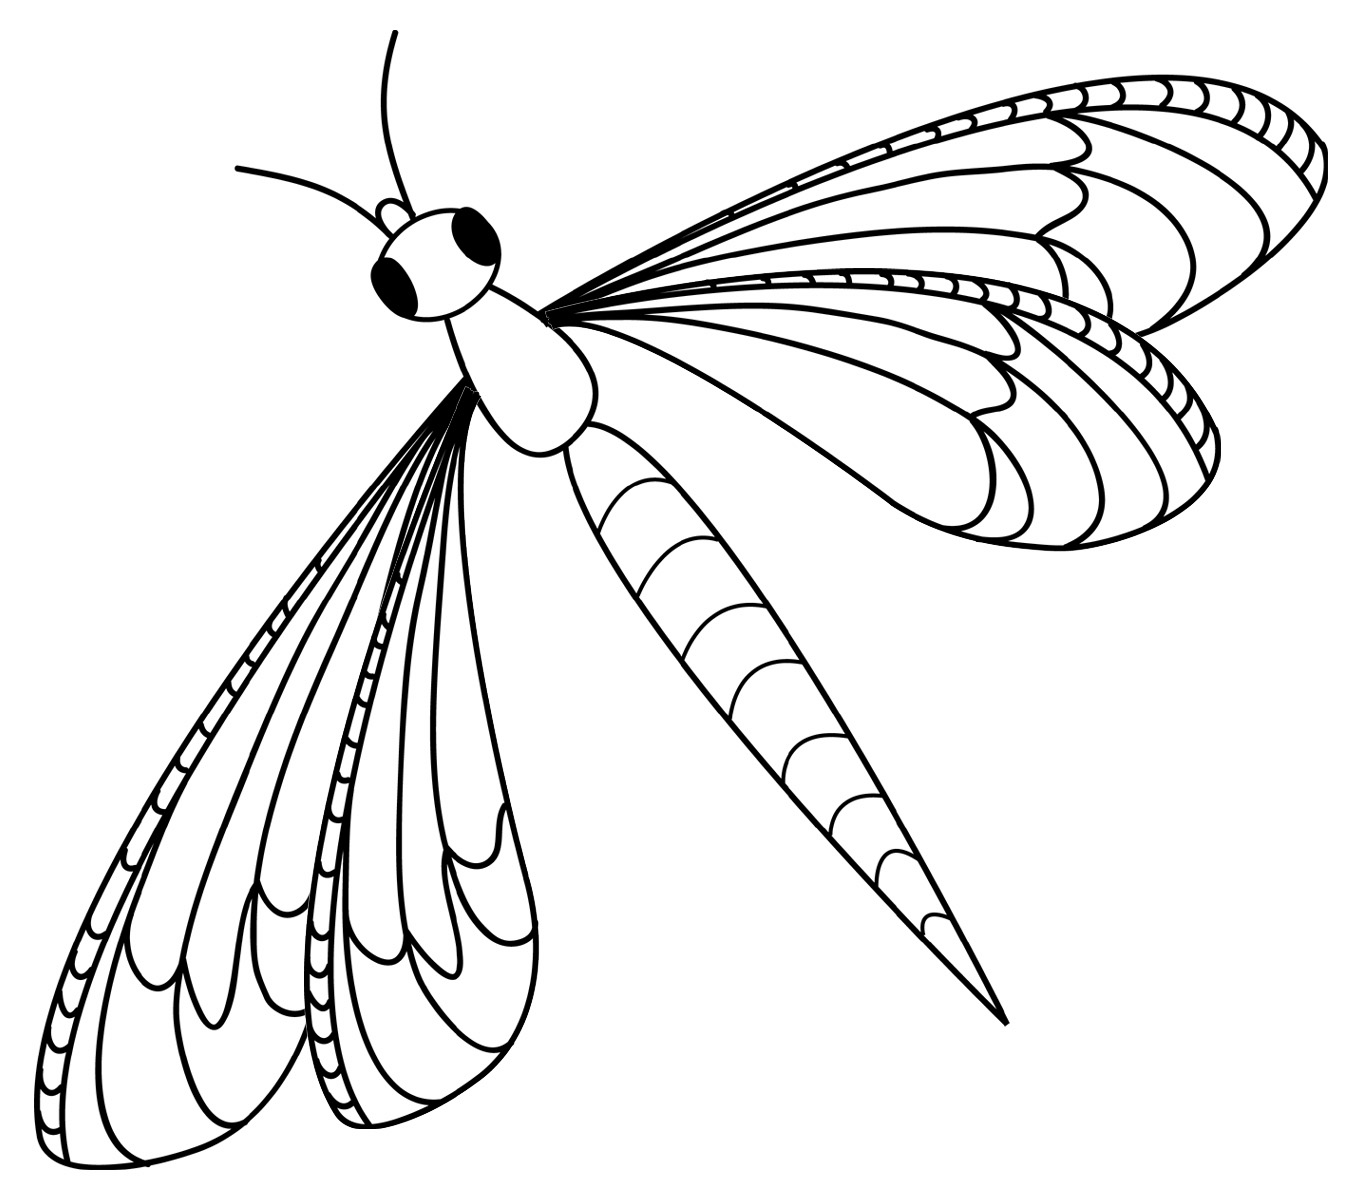 dragonflies coloring pages Free Printable Dragonfly Coloring Pages For Kids dragonflies coloring pages